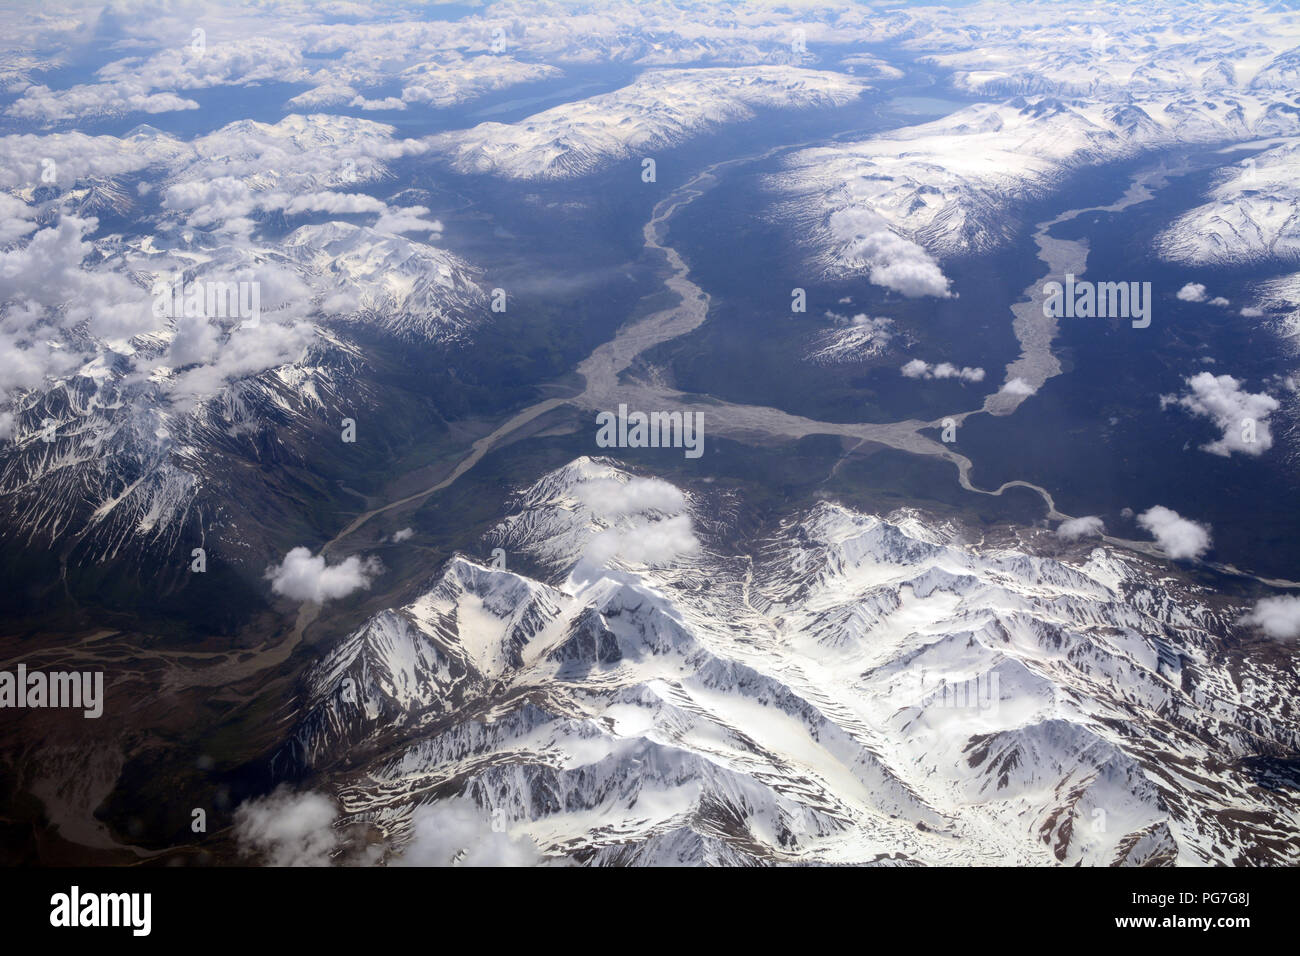 An aerial view of glacial runoff and rivers originating in the icefieds of the St. Elias Mountains, Kluane National Park, Yukon Territory, Canada. - Stock Image